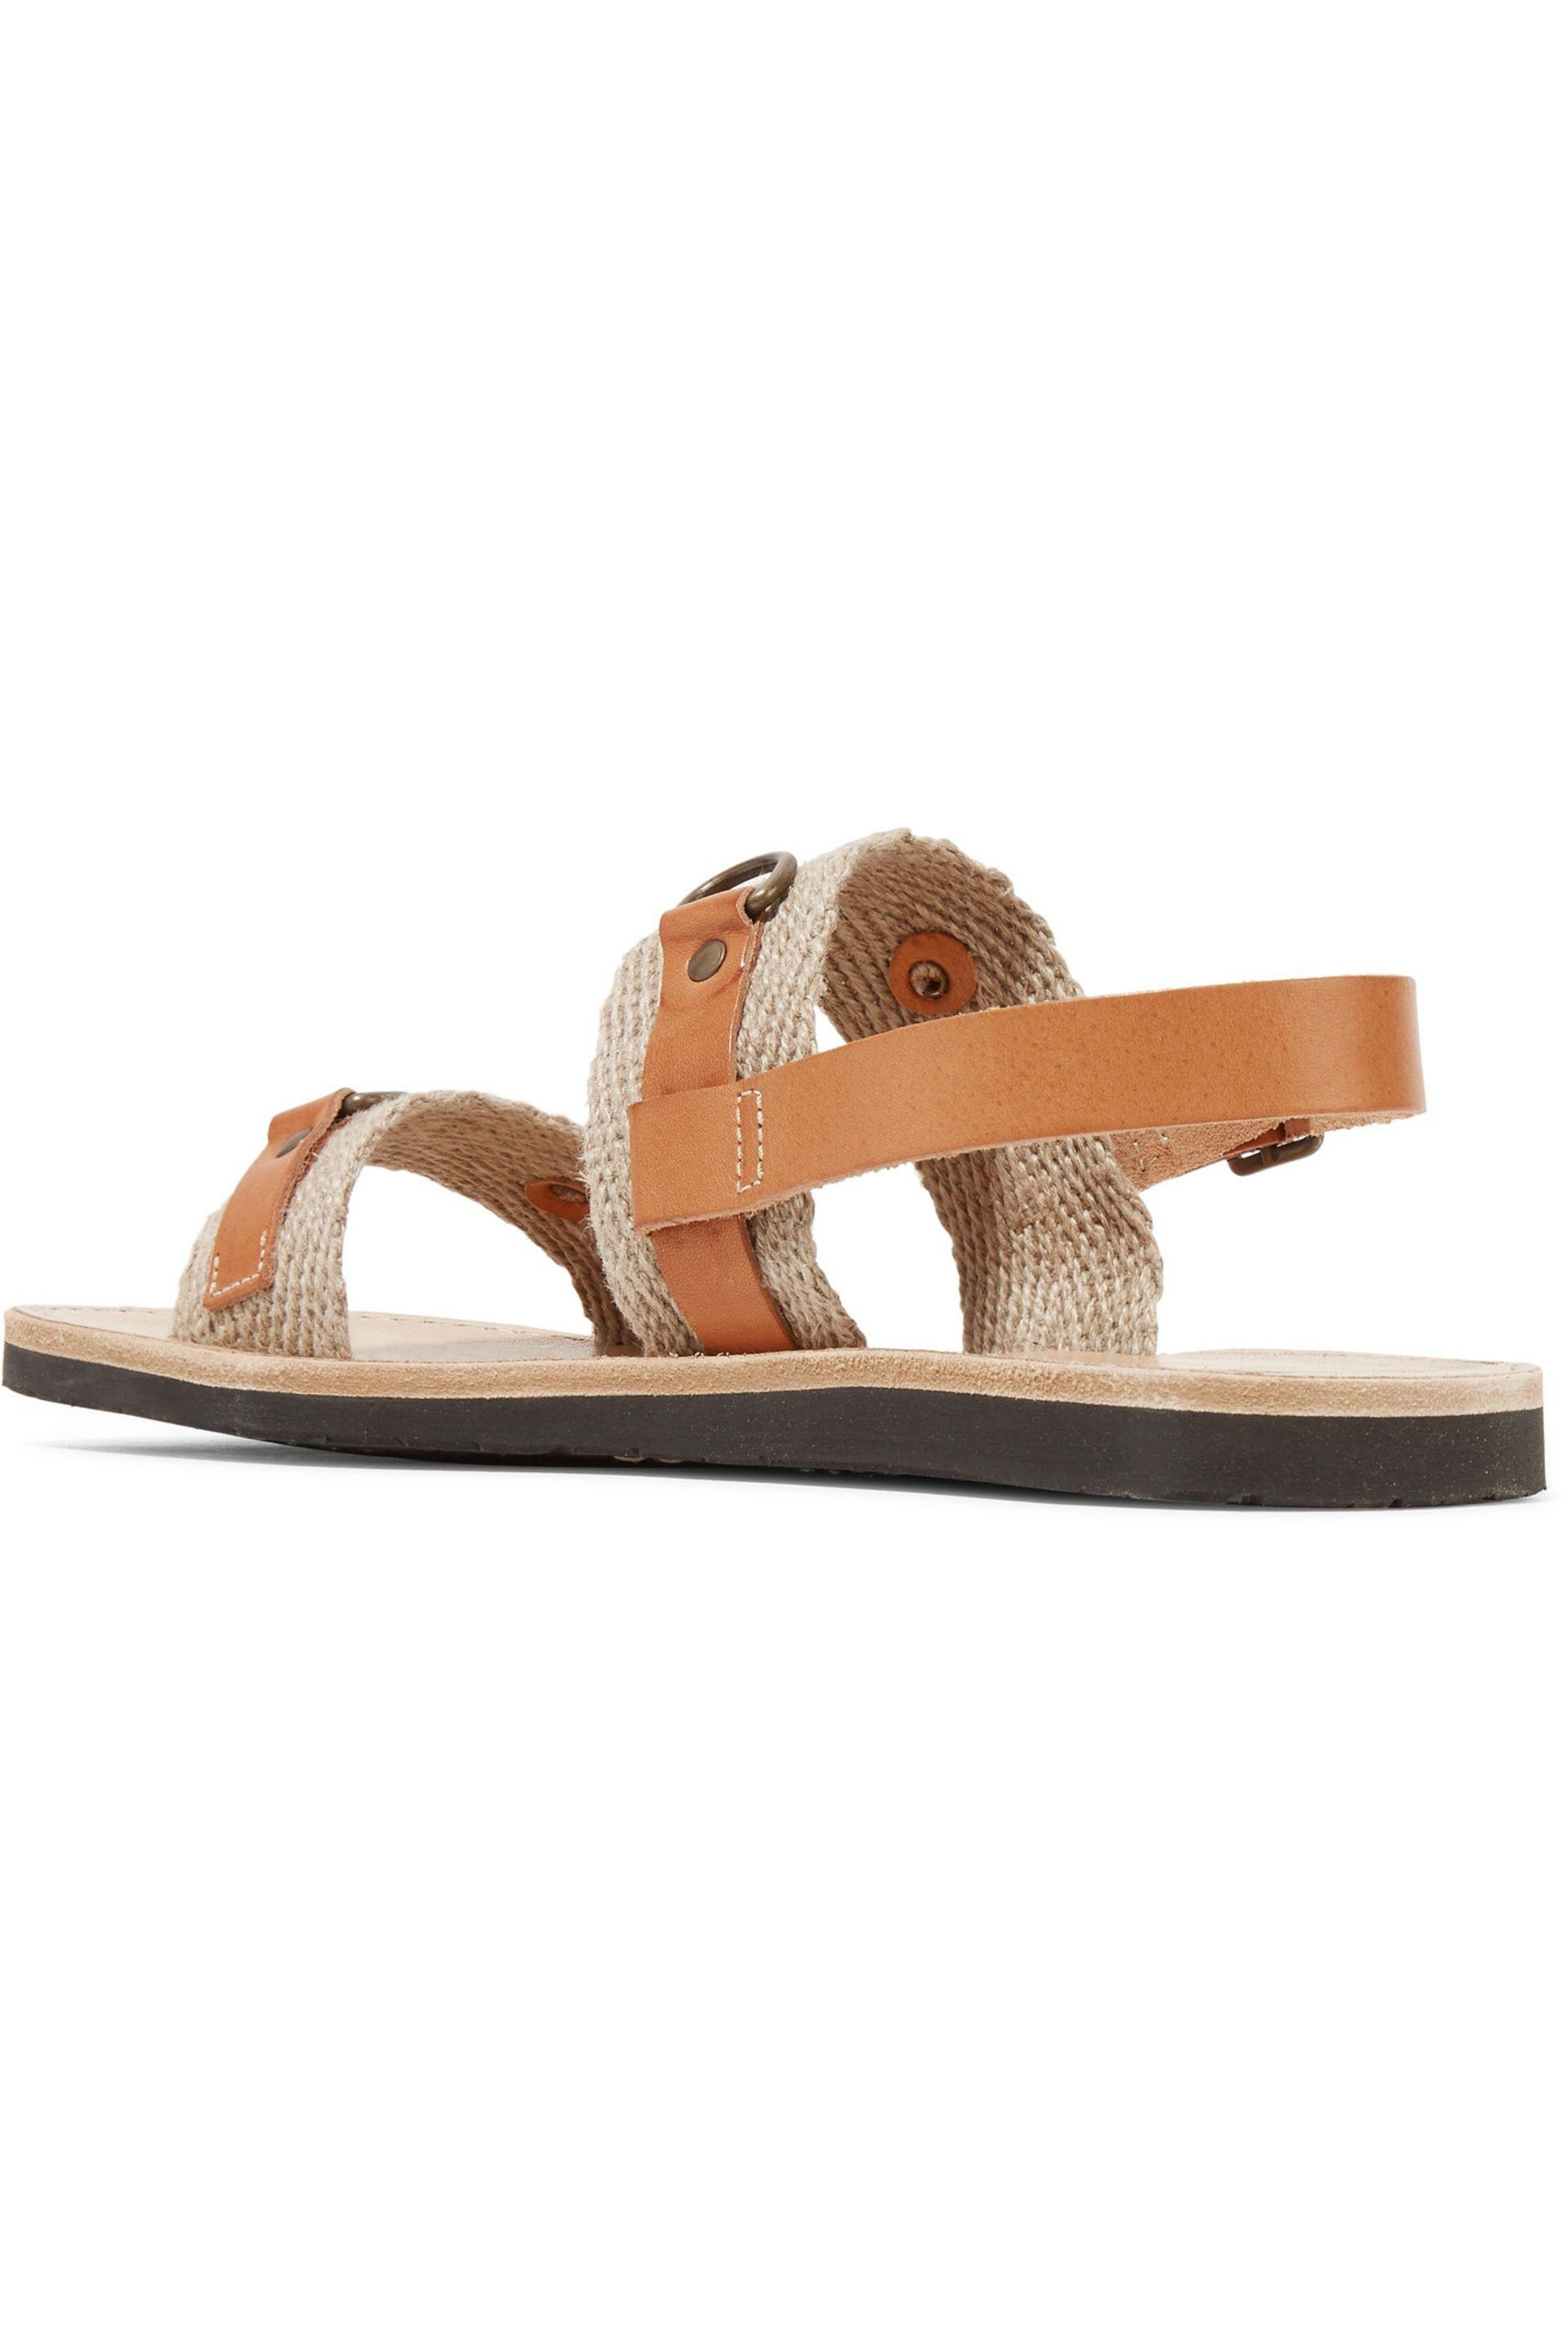 Étoile Isabel Marant - Brown Jess Paneled Leather And Woven Sandals - Lyst.  View Fullscreen